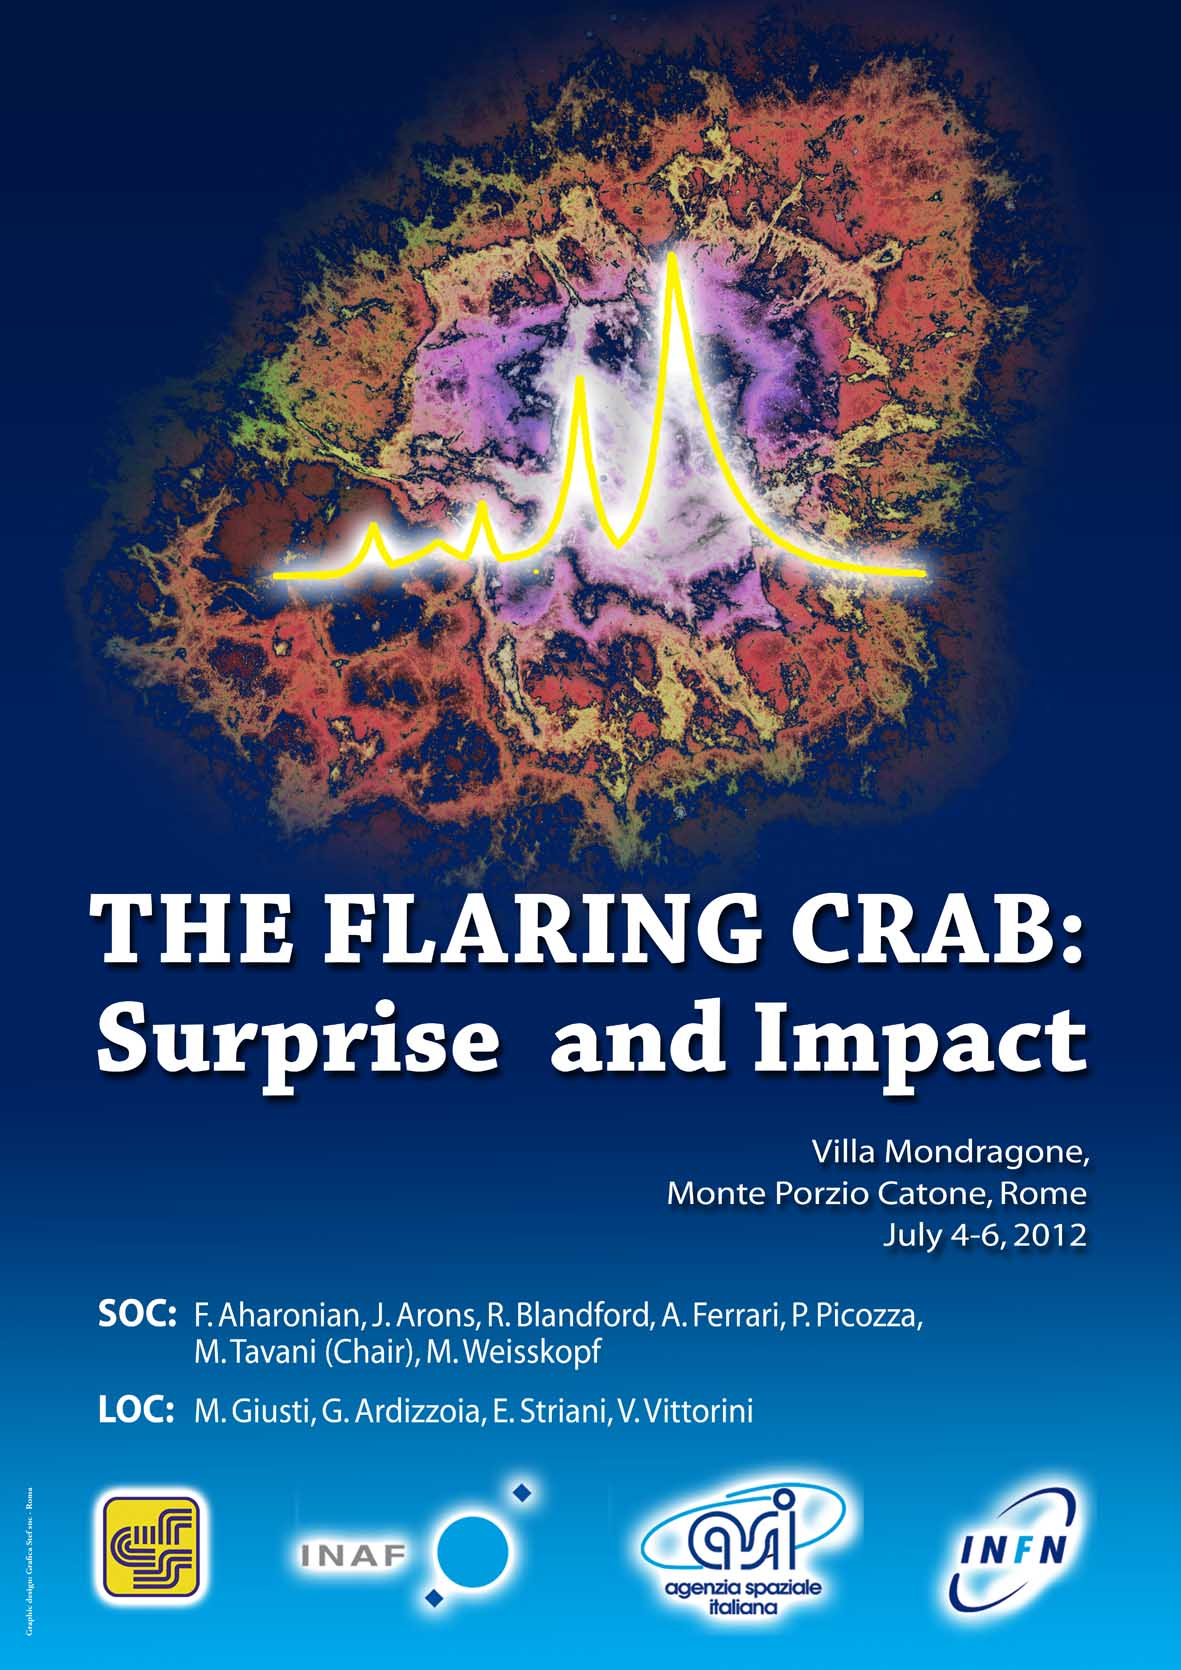 The Flaring Crab Meeting